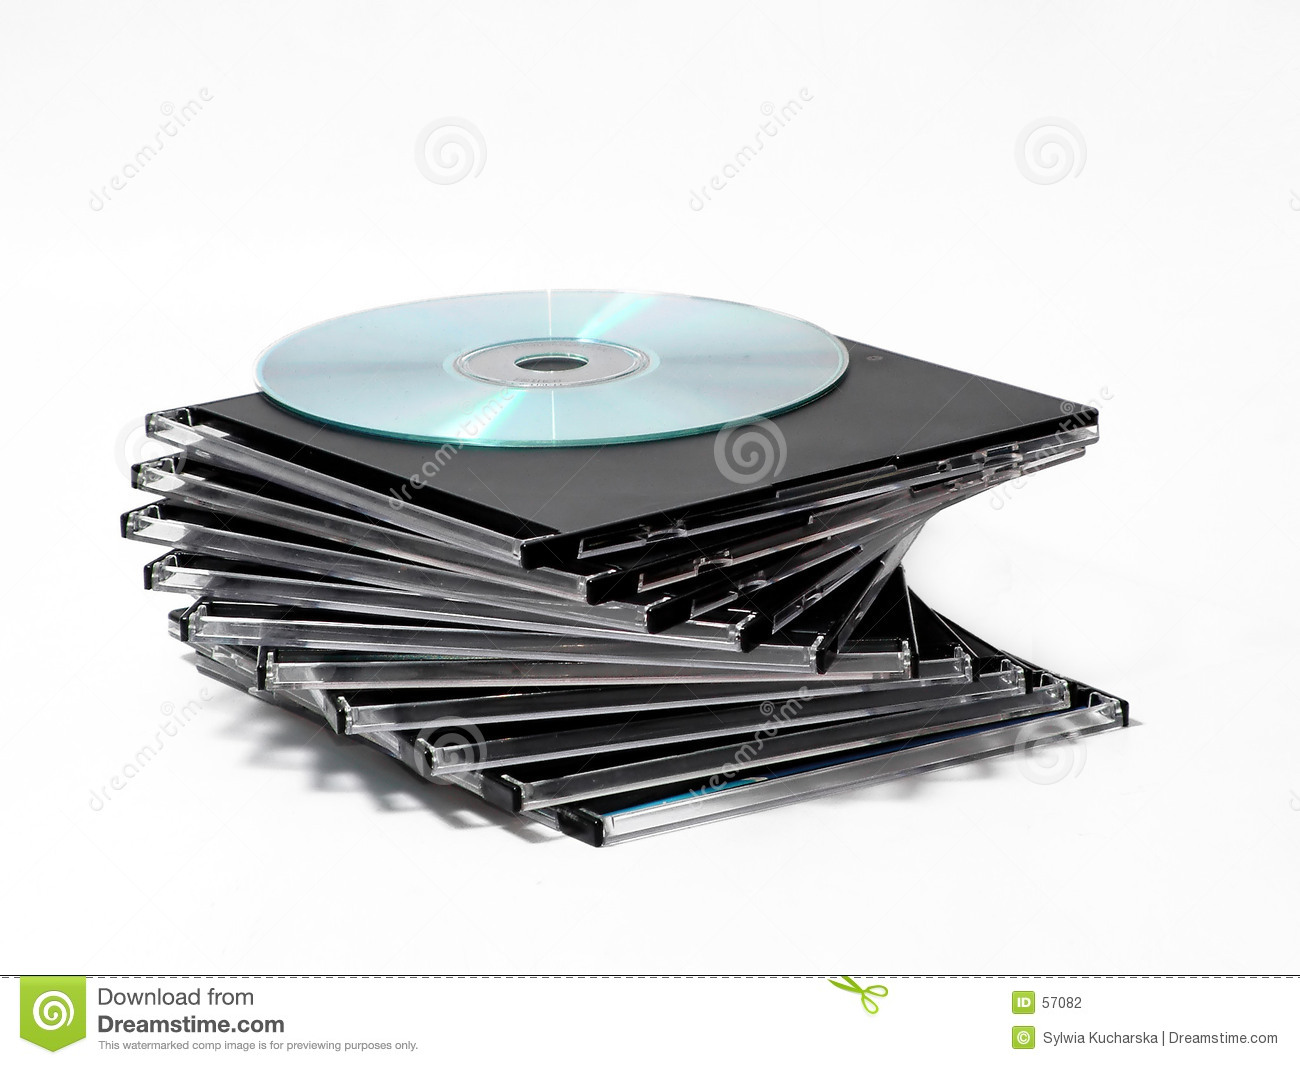 Sommige cds